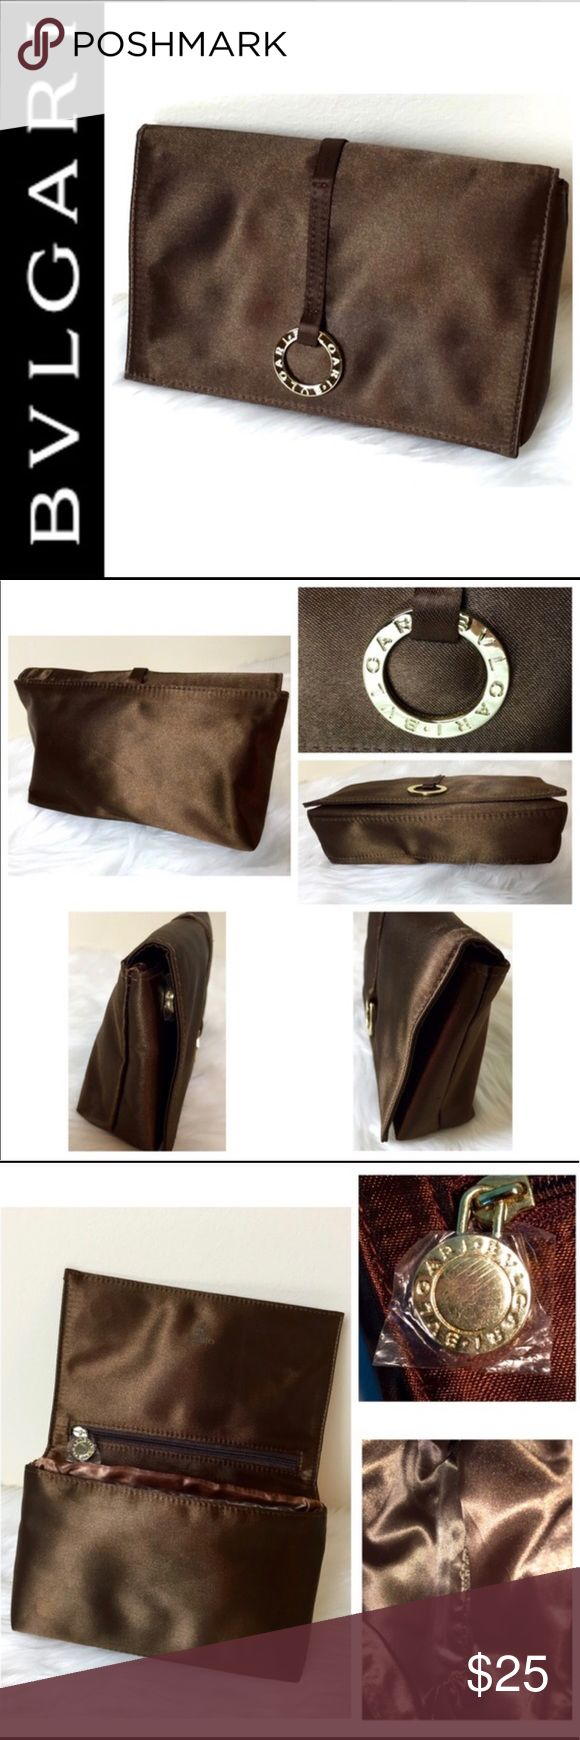 "NWOT Bvlgari Designer Cosmetic Bag Bvlgari Designer Cosmetic Bag in Elegant Brown Nylon with Magnetic Flap Closure, 1 Zip Pocket on Interior of Flap, Approx. Size is 7 1/2"" x 5"" x 1 3/4"", Perfect Traveling Size and can Fit easily into your Satchel Bag, NWOT Bulgari Bags Cosmetic Bags & Cases"